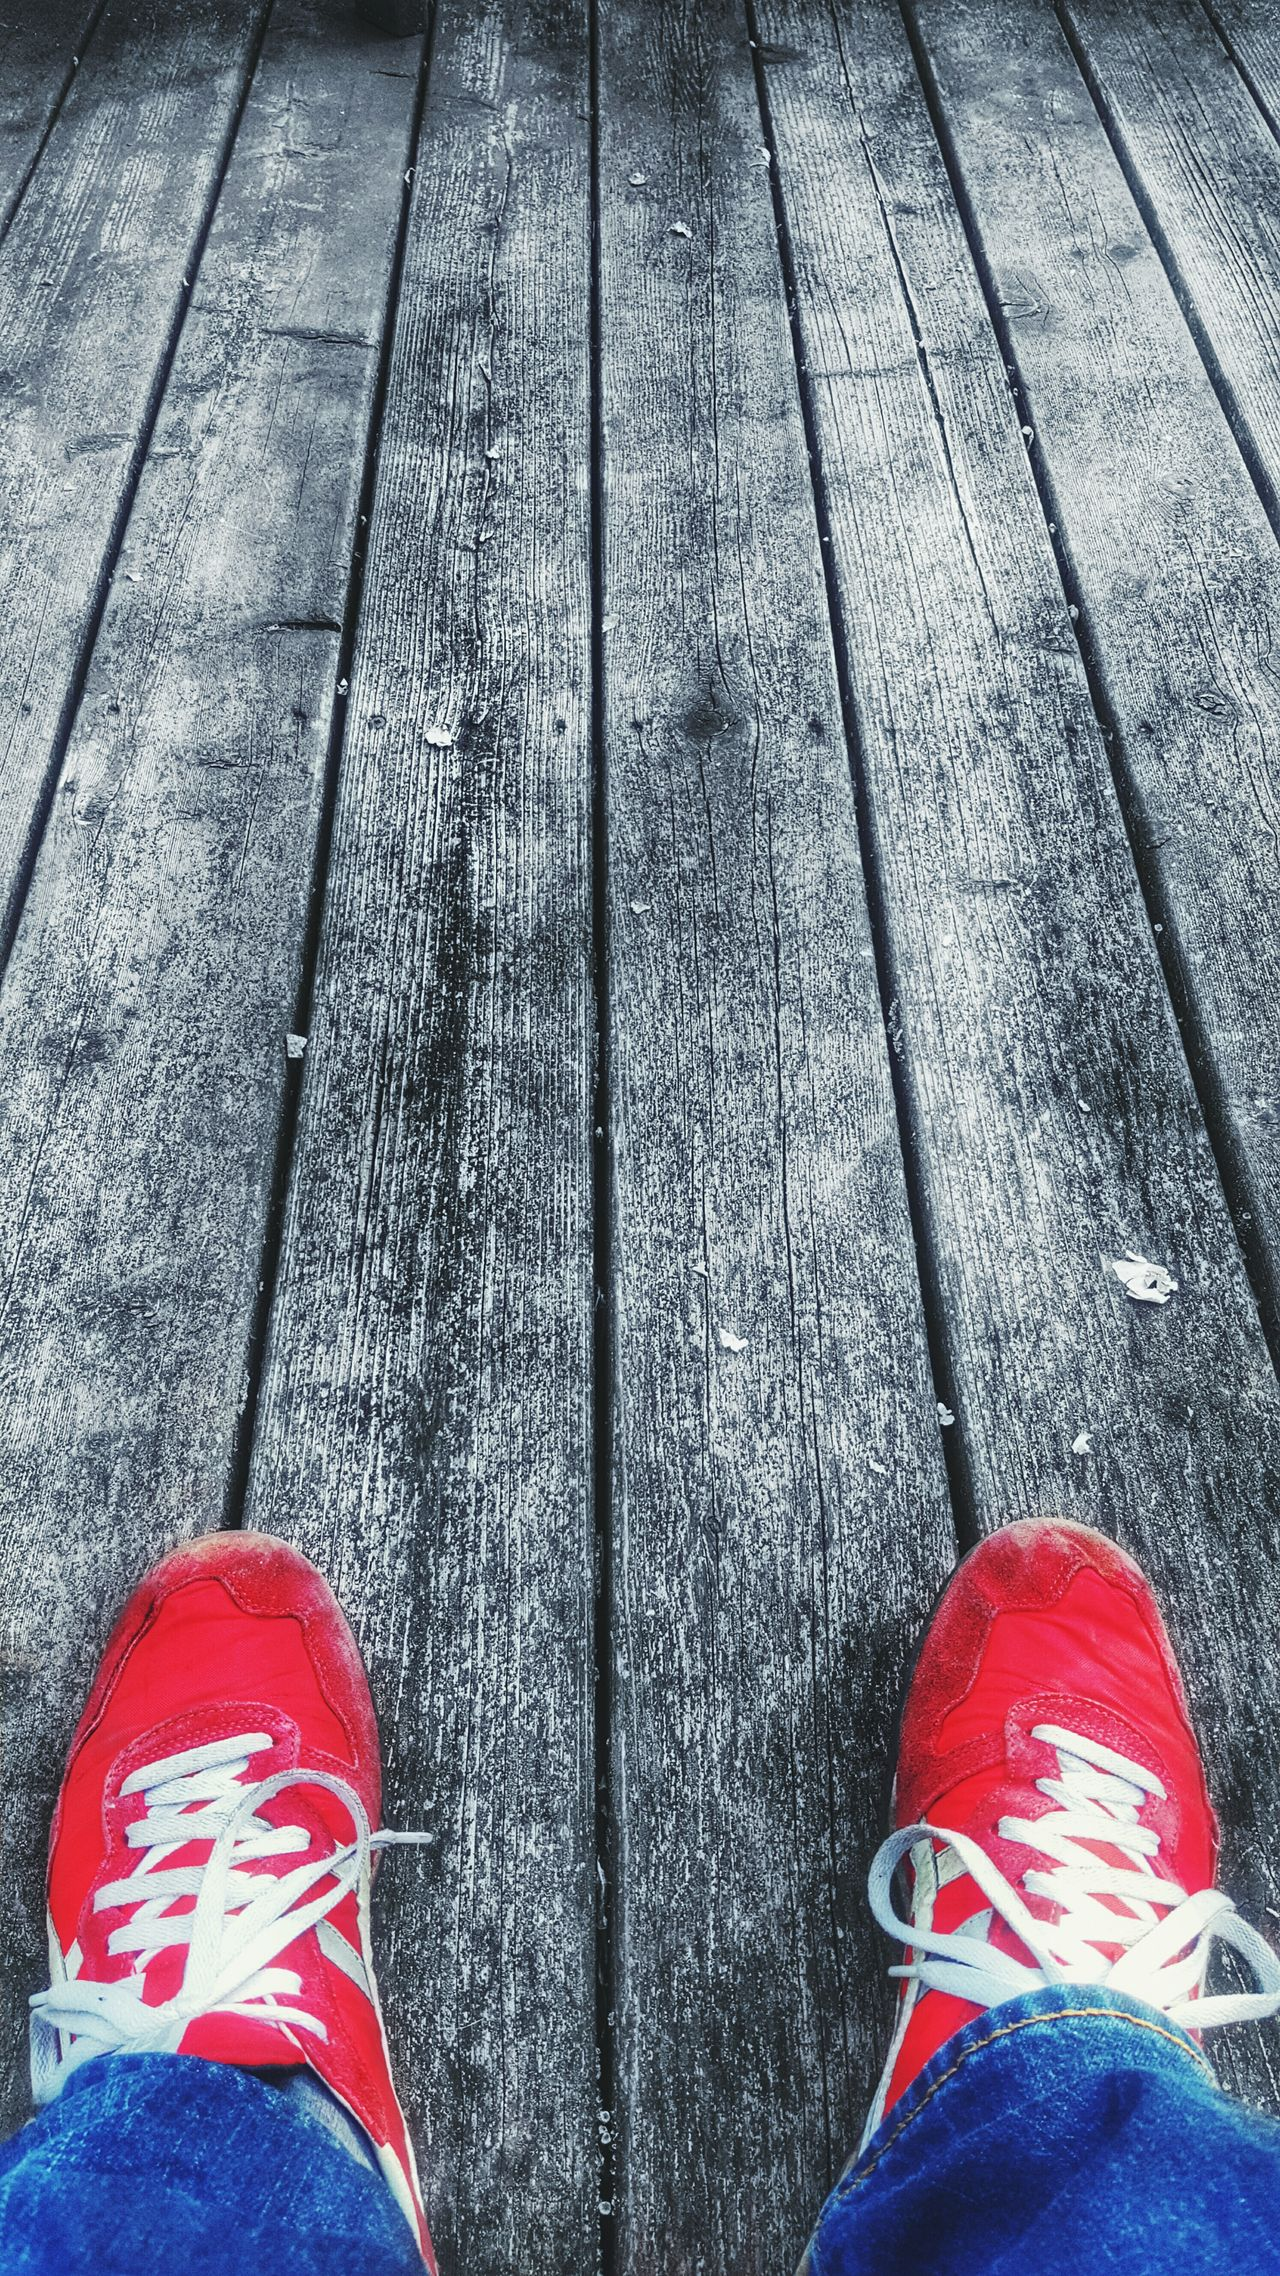 A beautiful afternoon Enjoying The Sun Deck Red Shoes Red Colorsplash Wood Black And White Shoes Boards These Shoes Have Taken Me Everywhere First Eyeem Photo Relaxing Porch